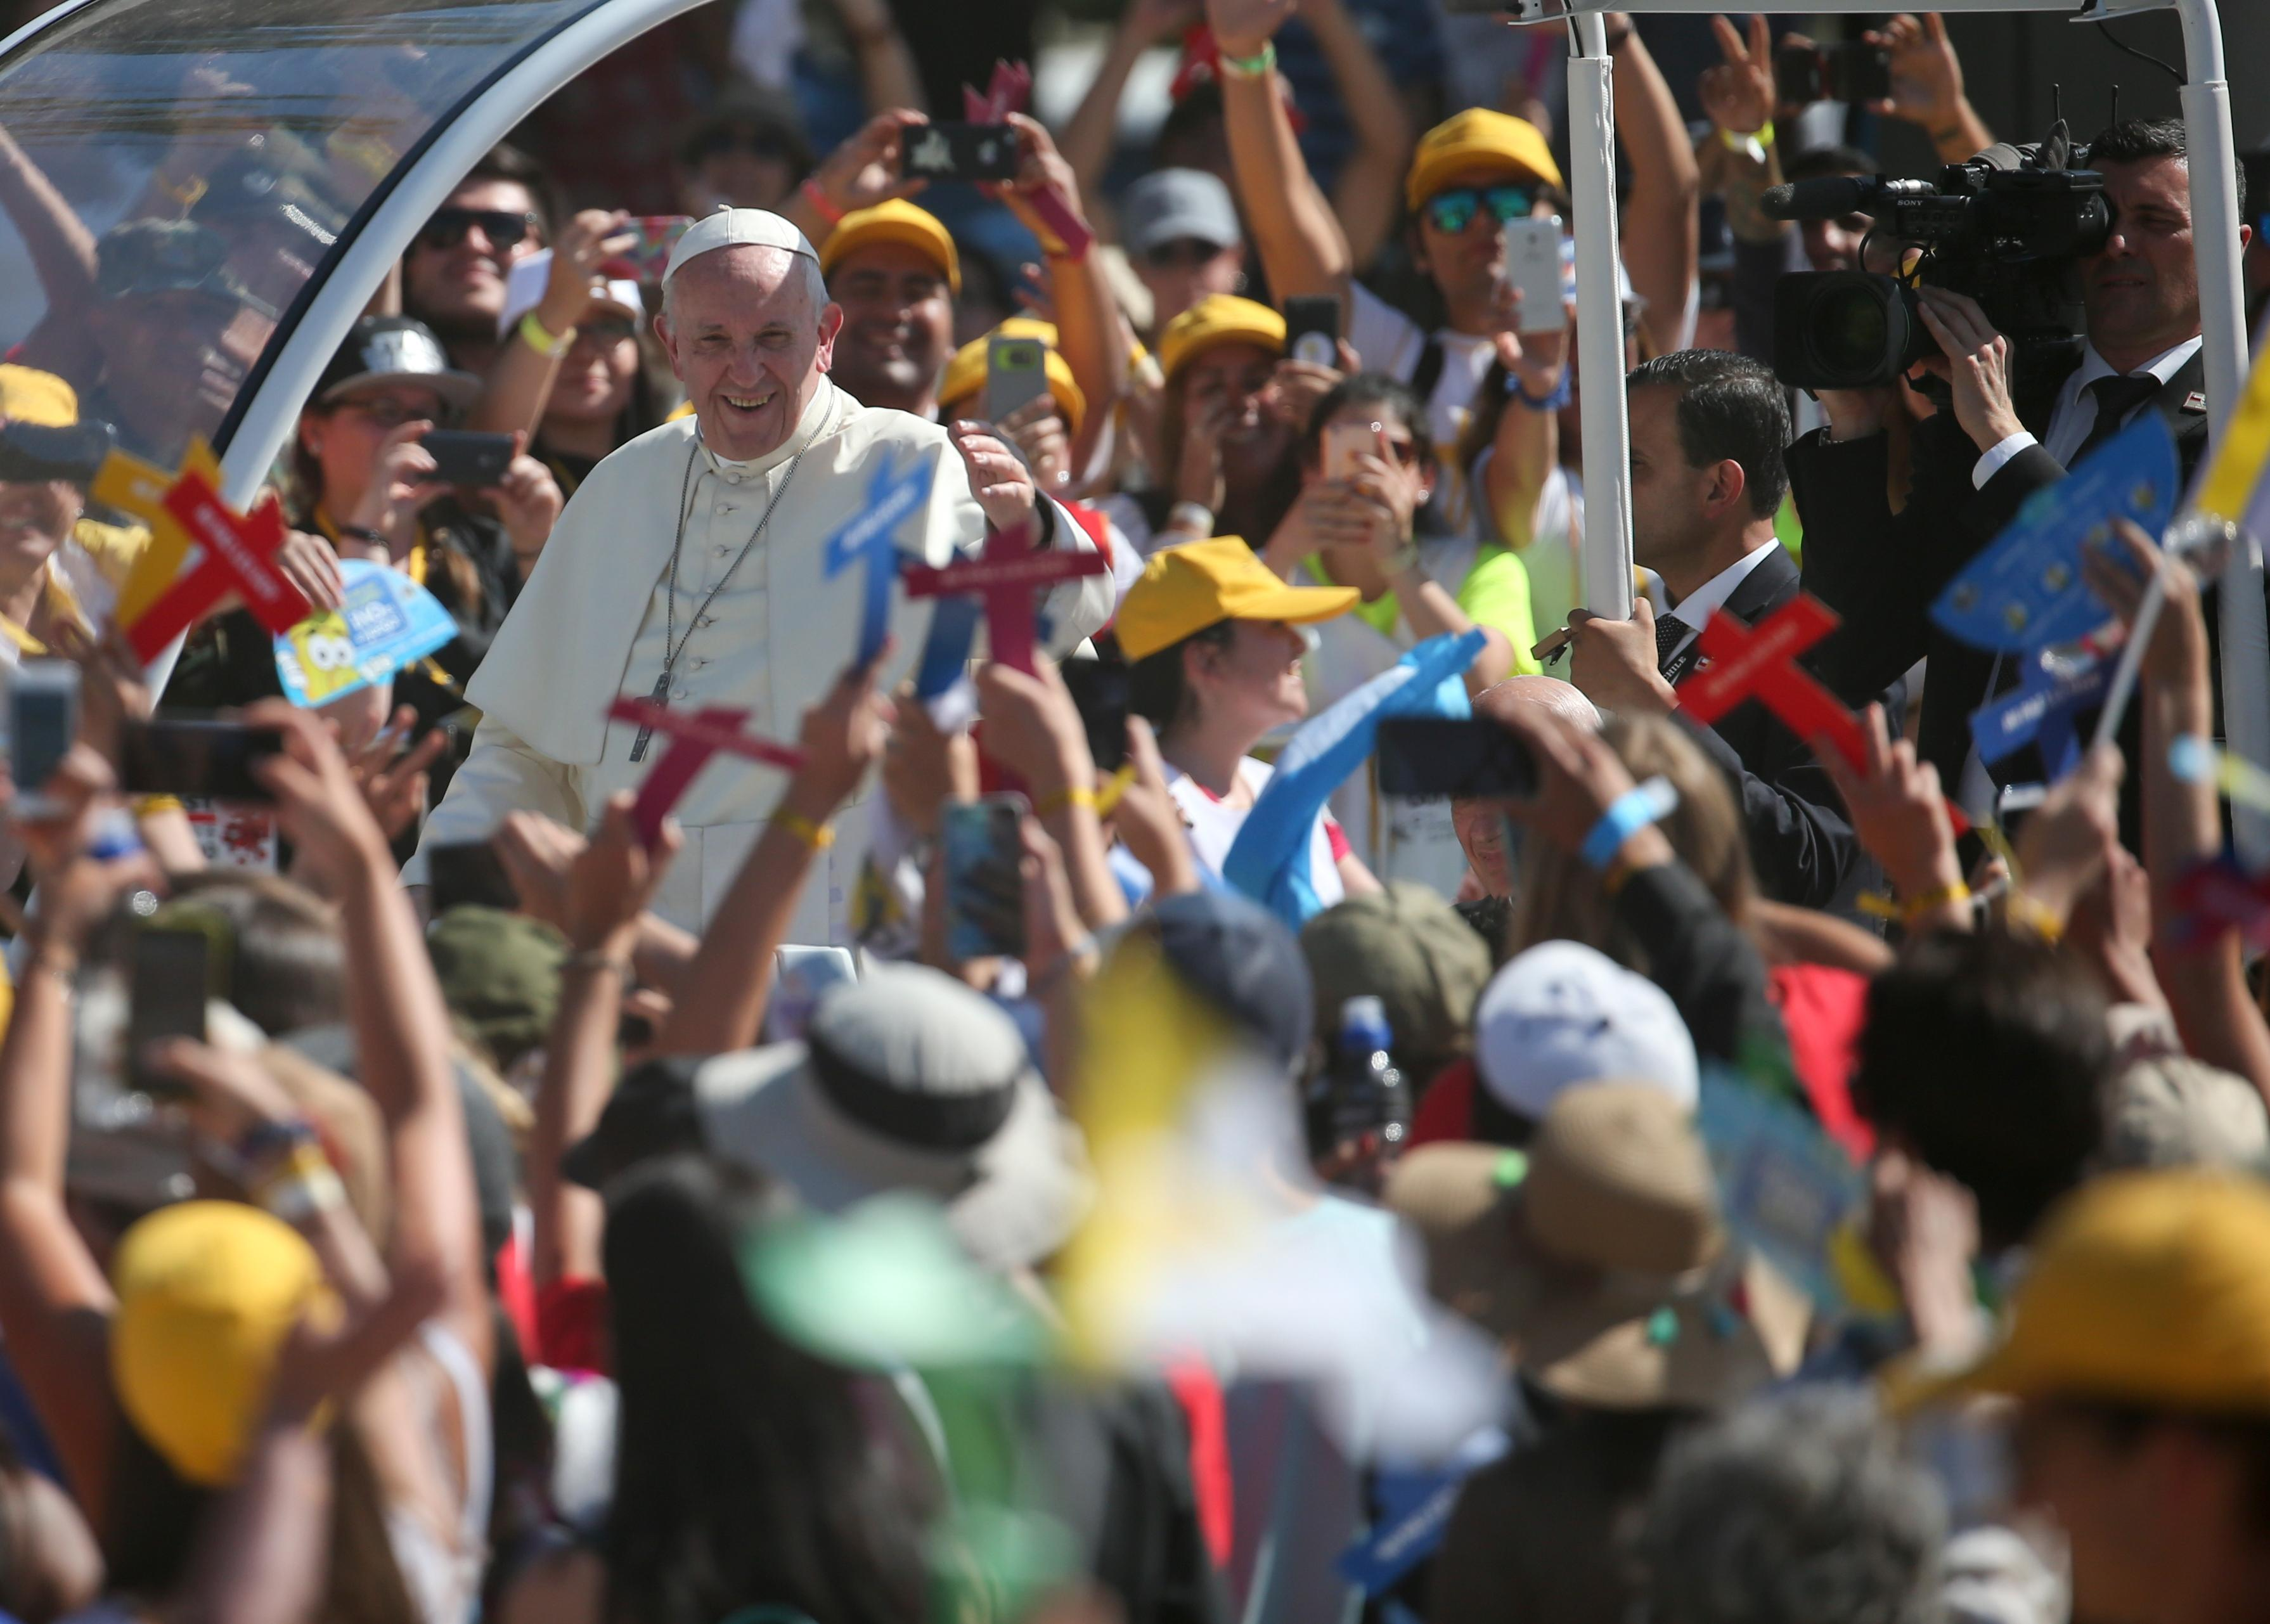 Pope Francis arrives for a meeting with young people at the Shrine of Maipu in Santiago, Chile, Wednesday, Jan.17, 2018. (AP Photo/Natacha Pisarenko)